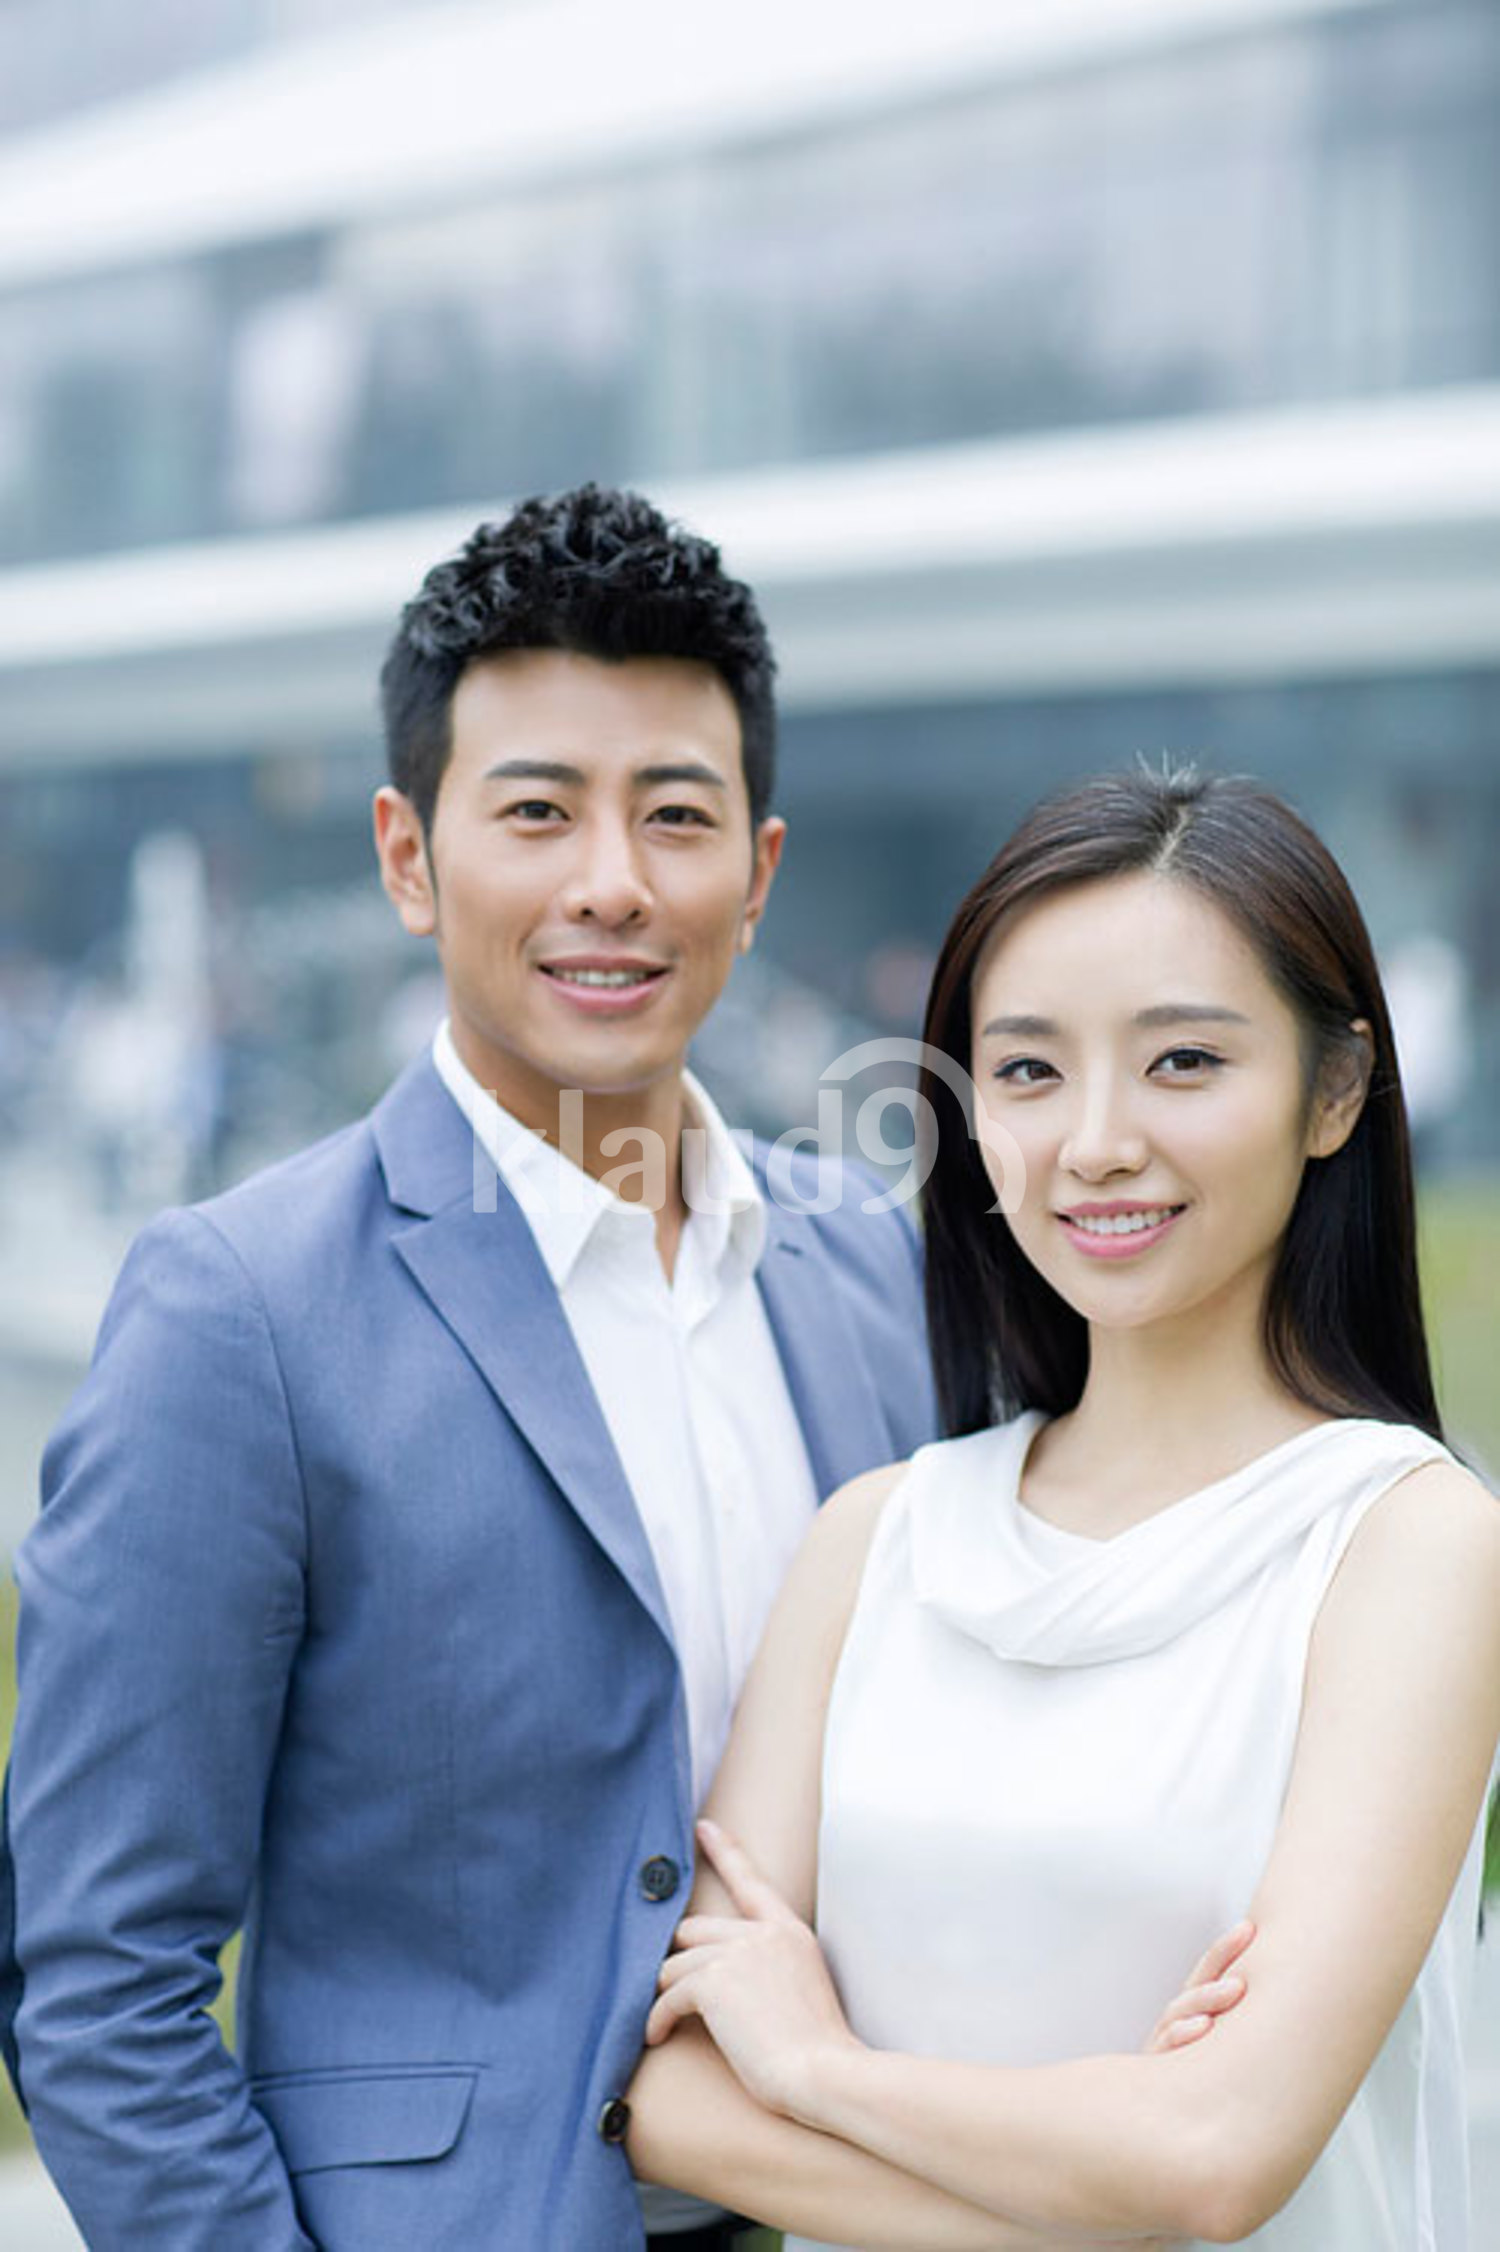 Portrait of confident Chinese businesspeople